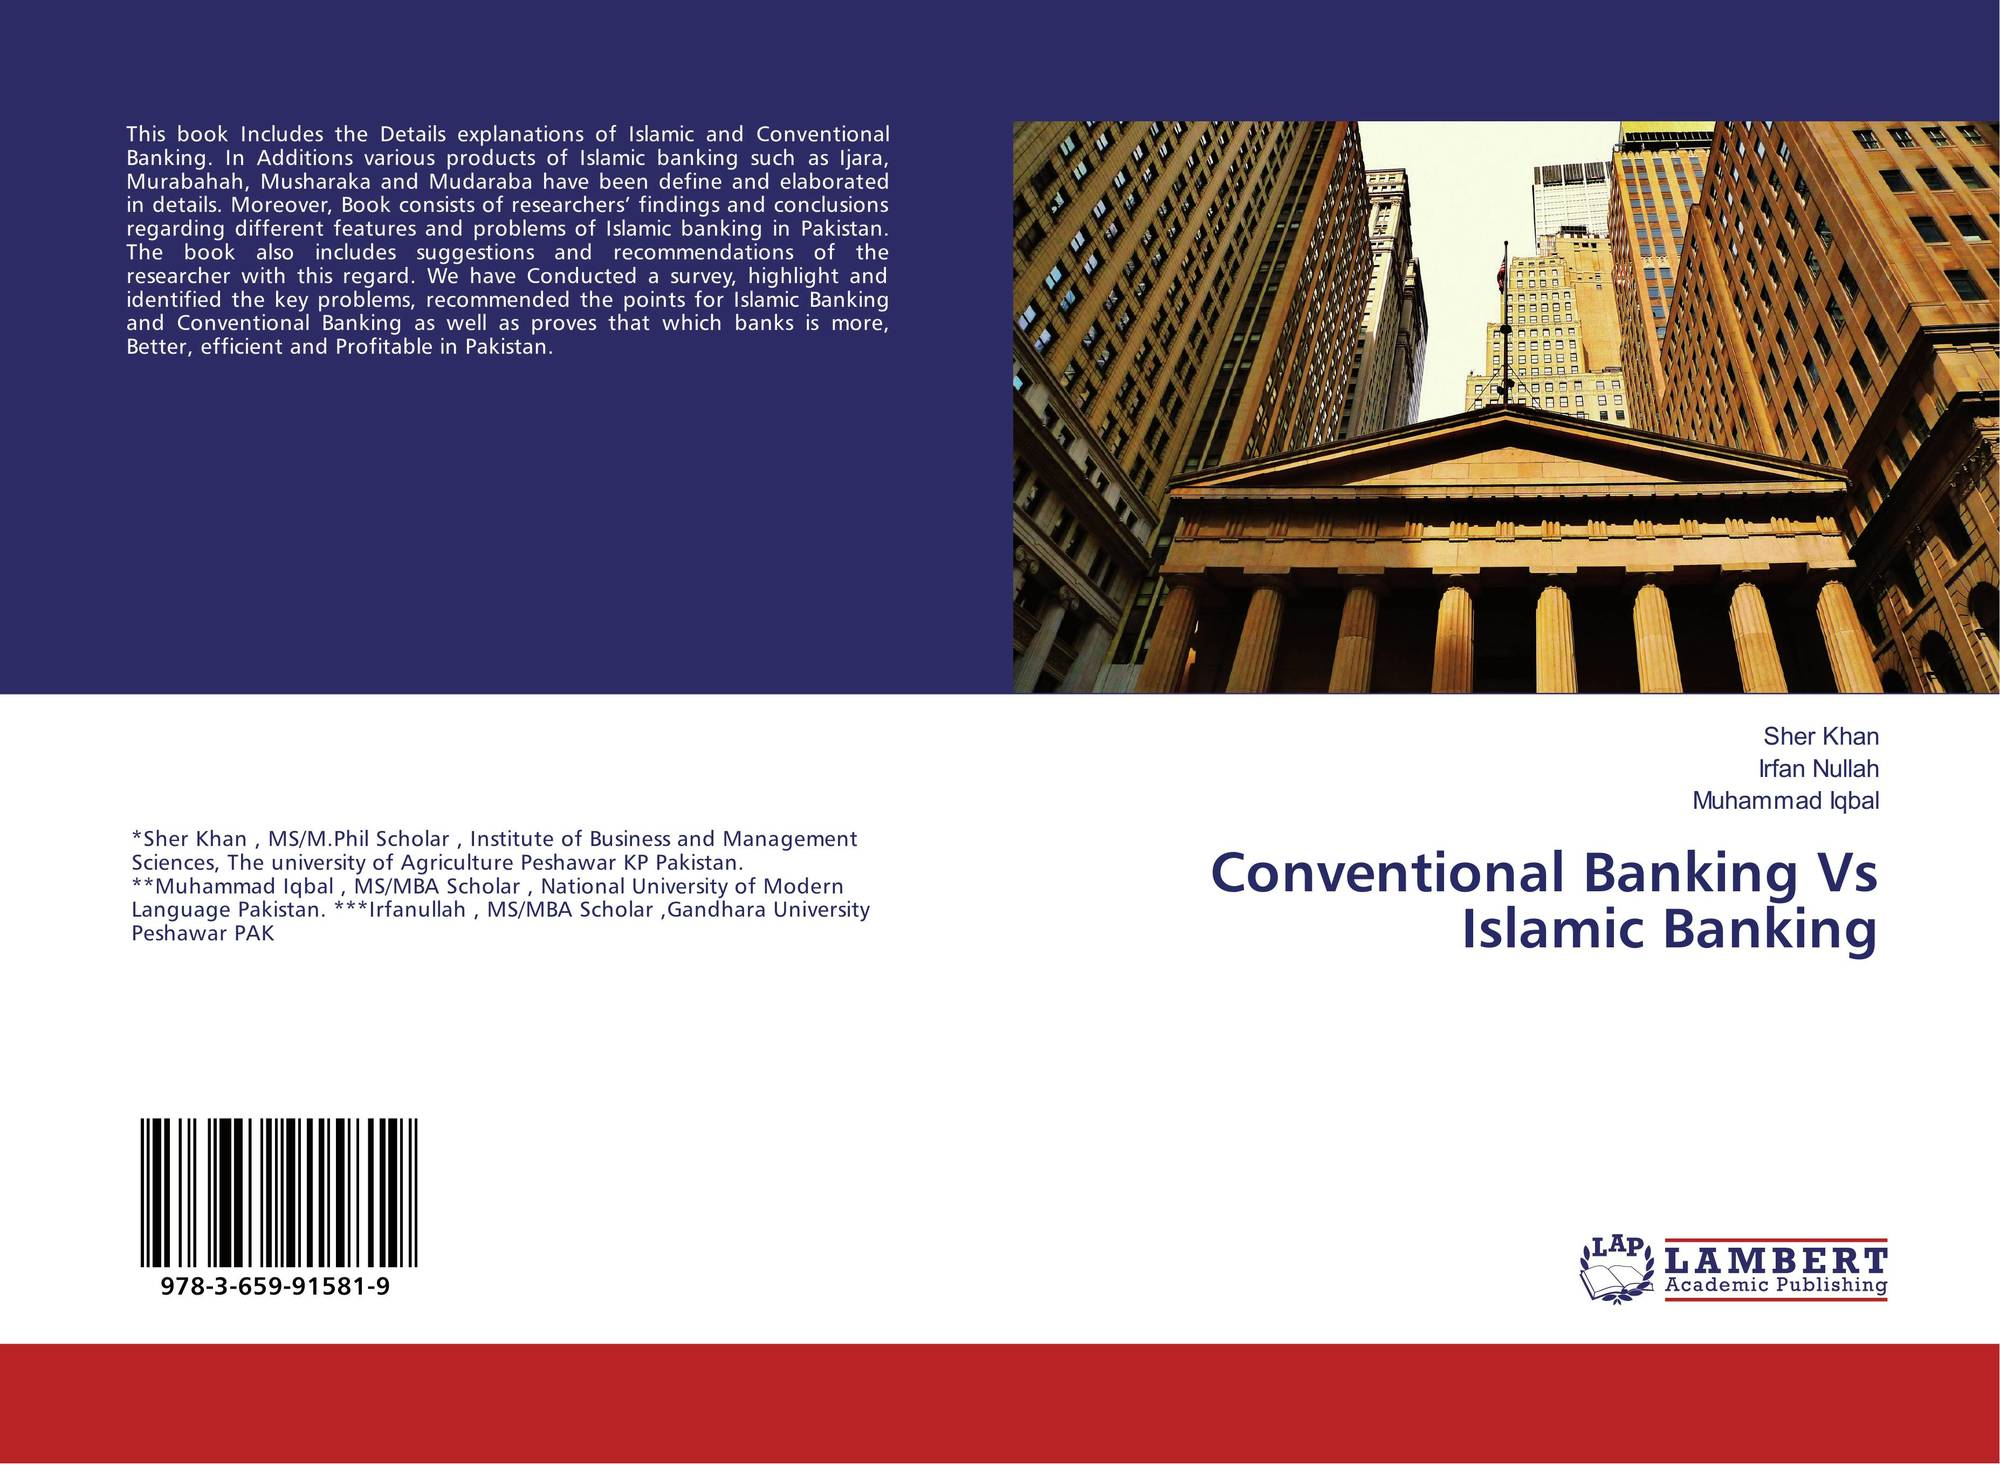 thesis islamic banking conventional banking Abstract - the objective of this study is to investigate the conventional banks  conversion into islamic banks it provides a significant opportunity to develop the .